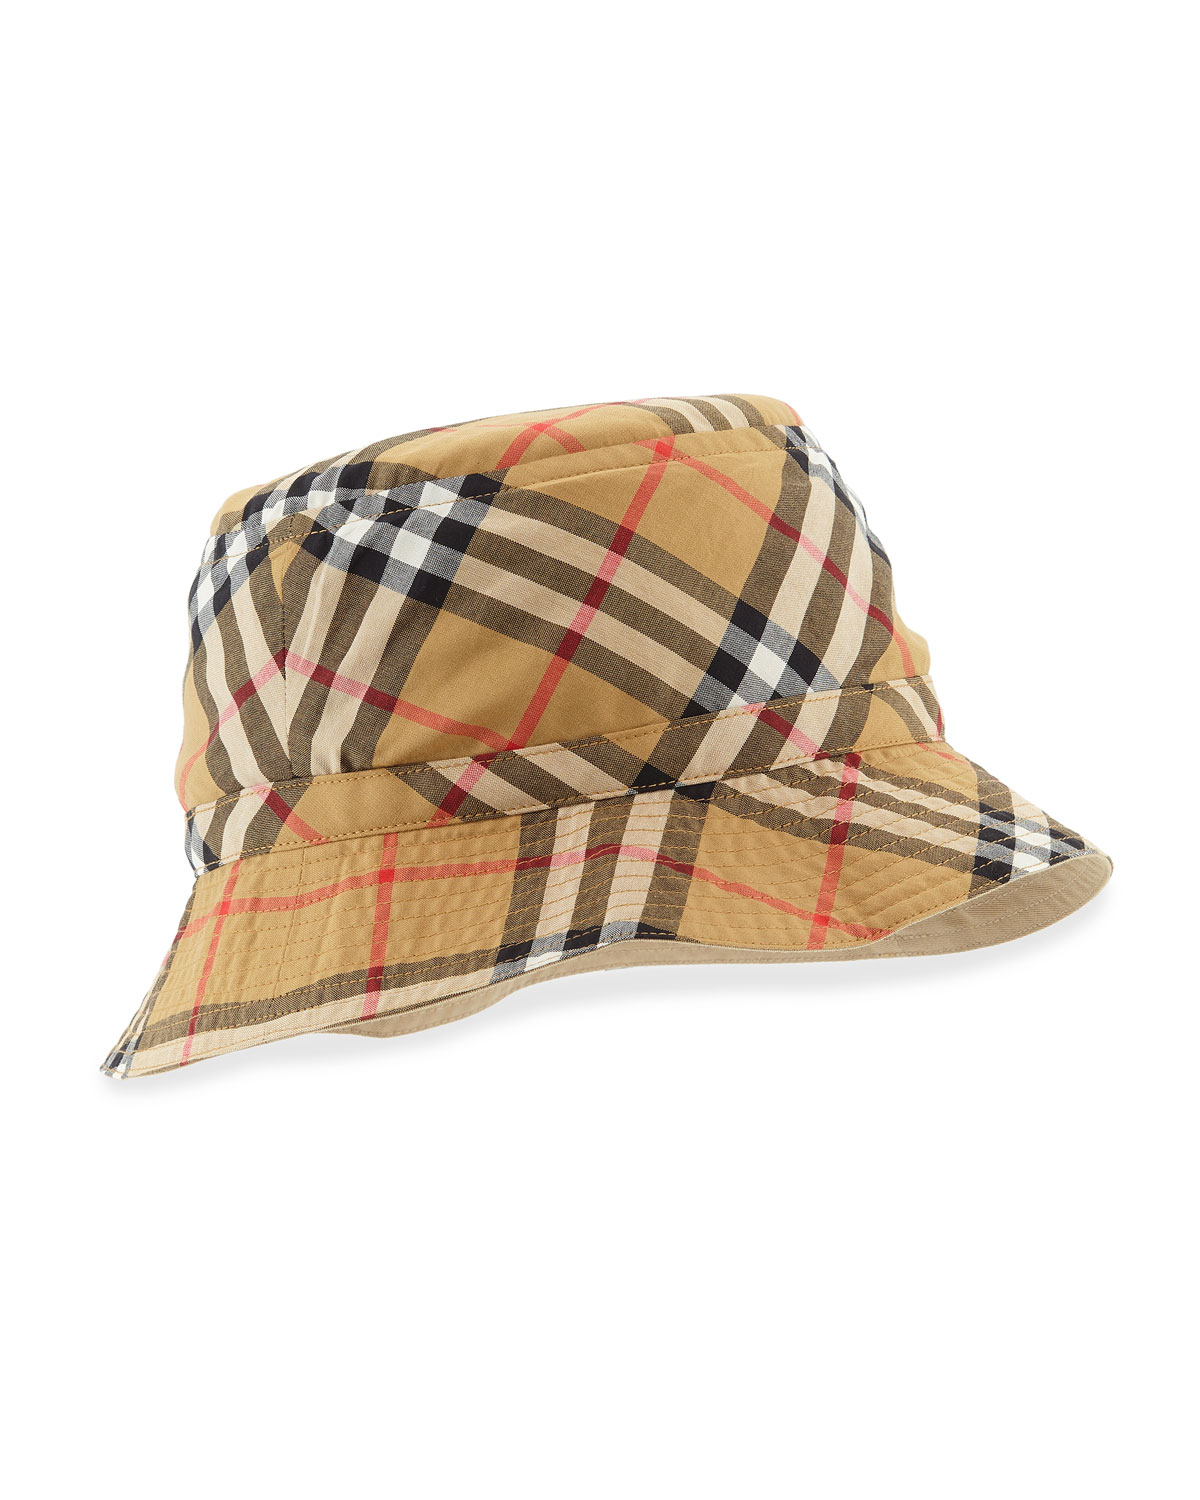 VINTAGE CHECK BUCKET HAT, SIZE M-L